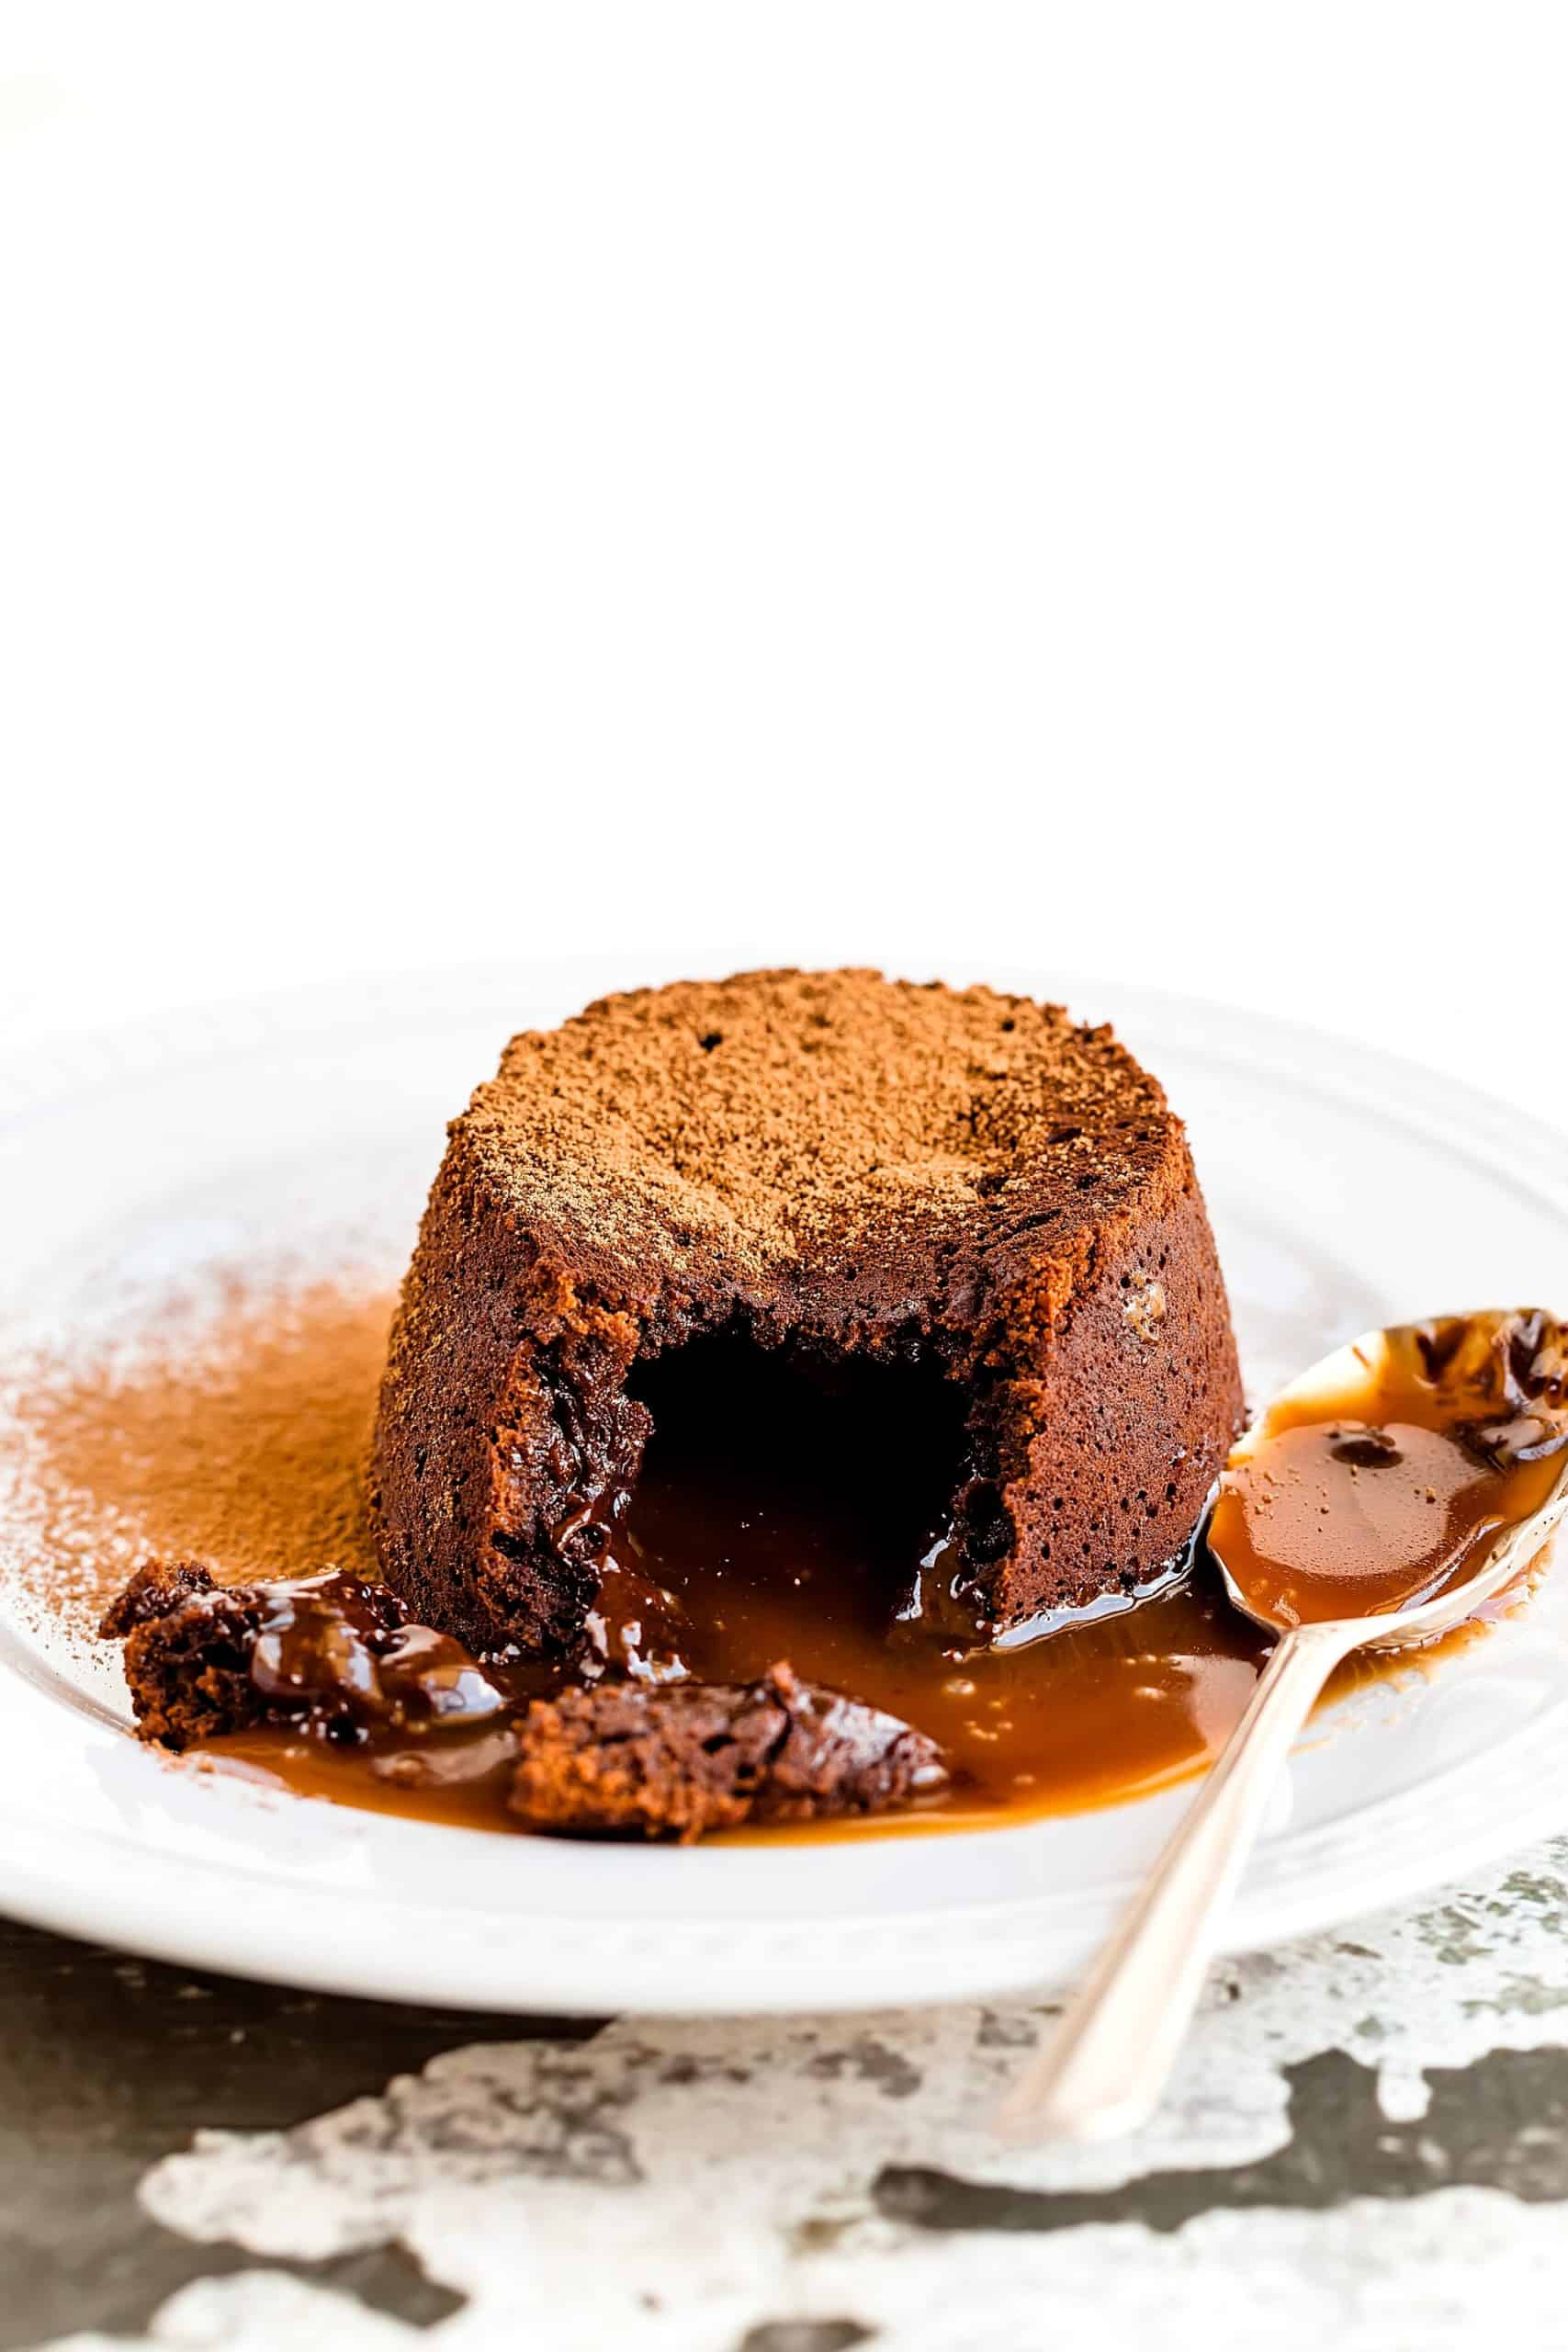 Sticky Toffee Pudding - Few Easy Steps To Make It